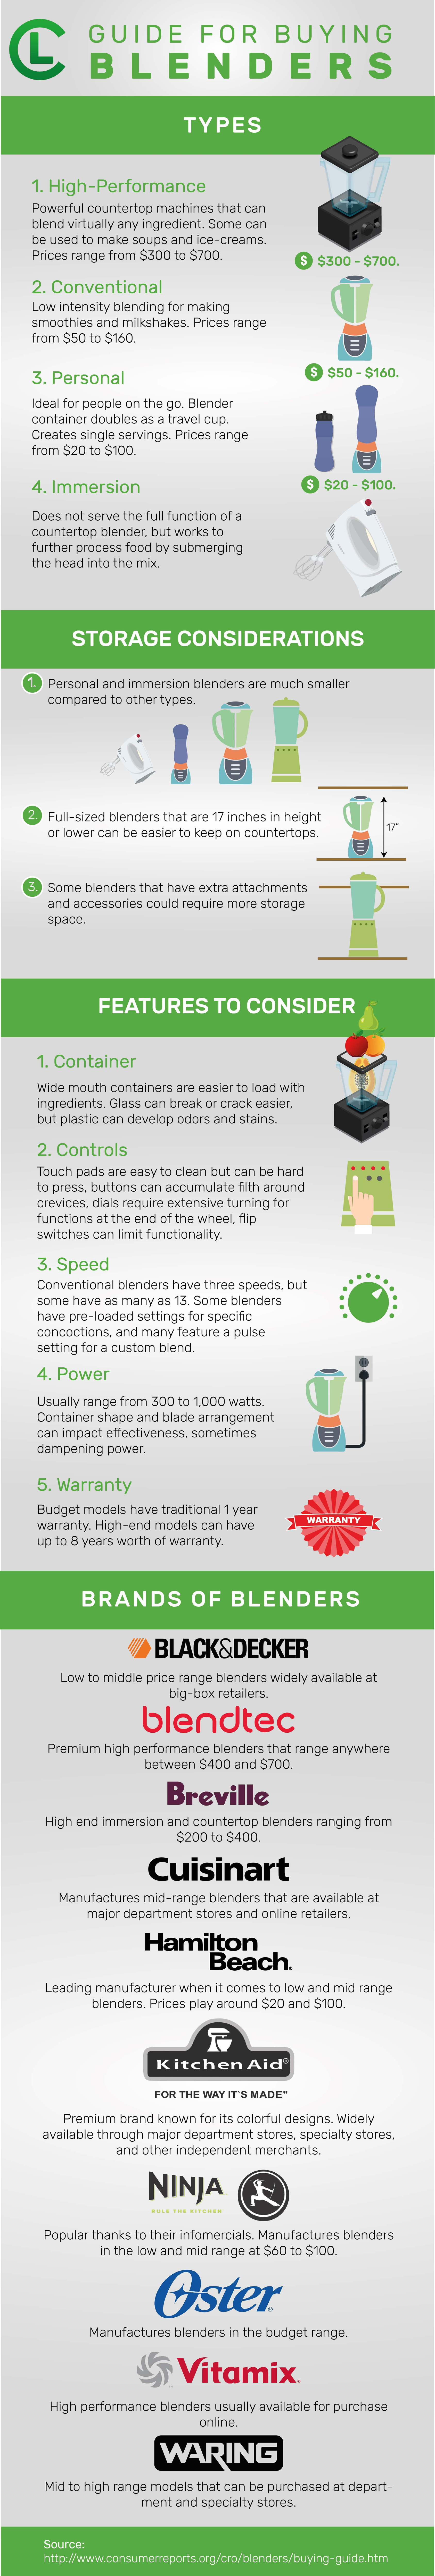 Guide For Buying Blenders Infographic